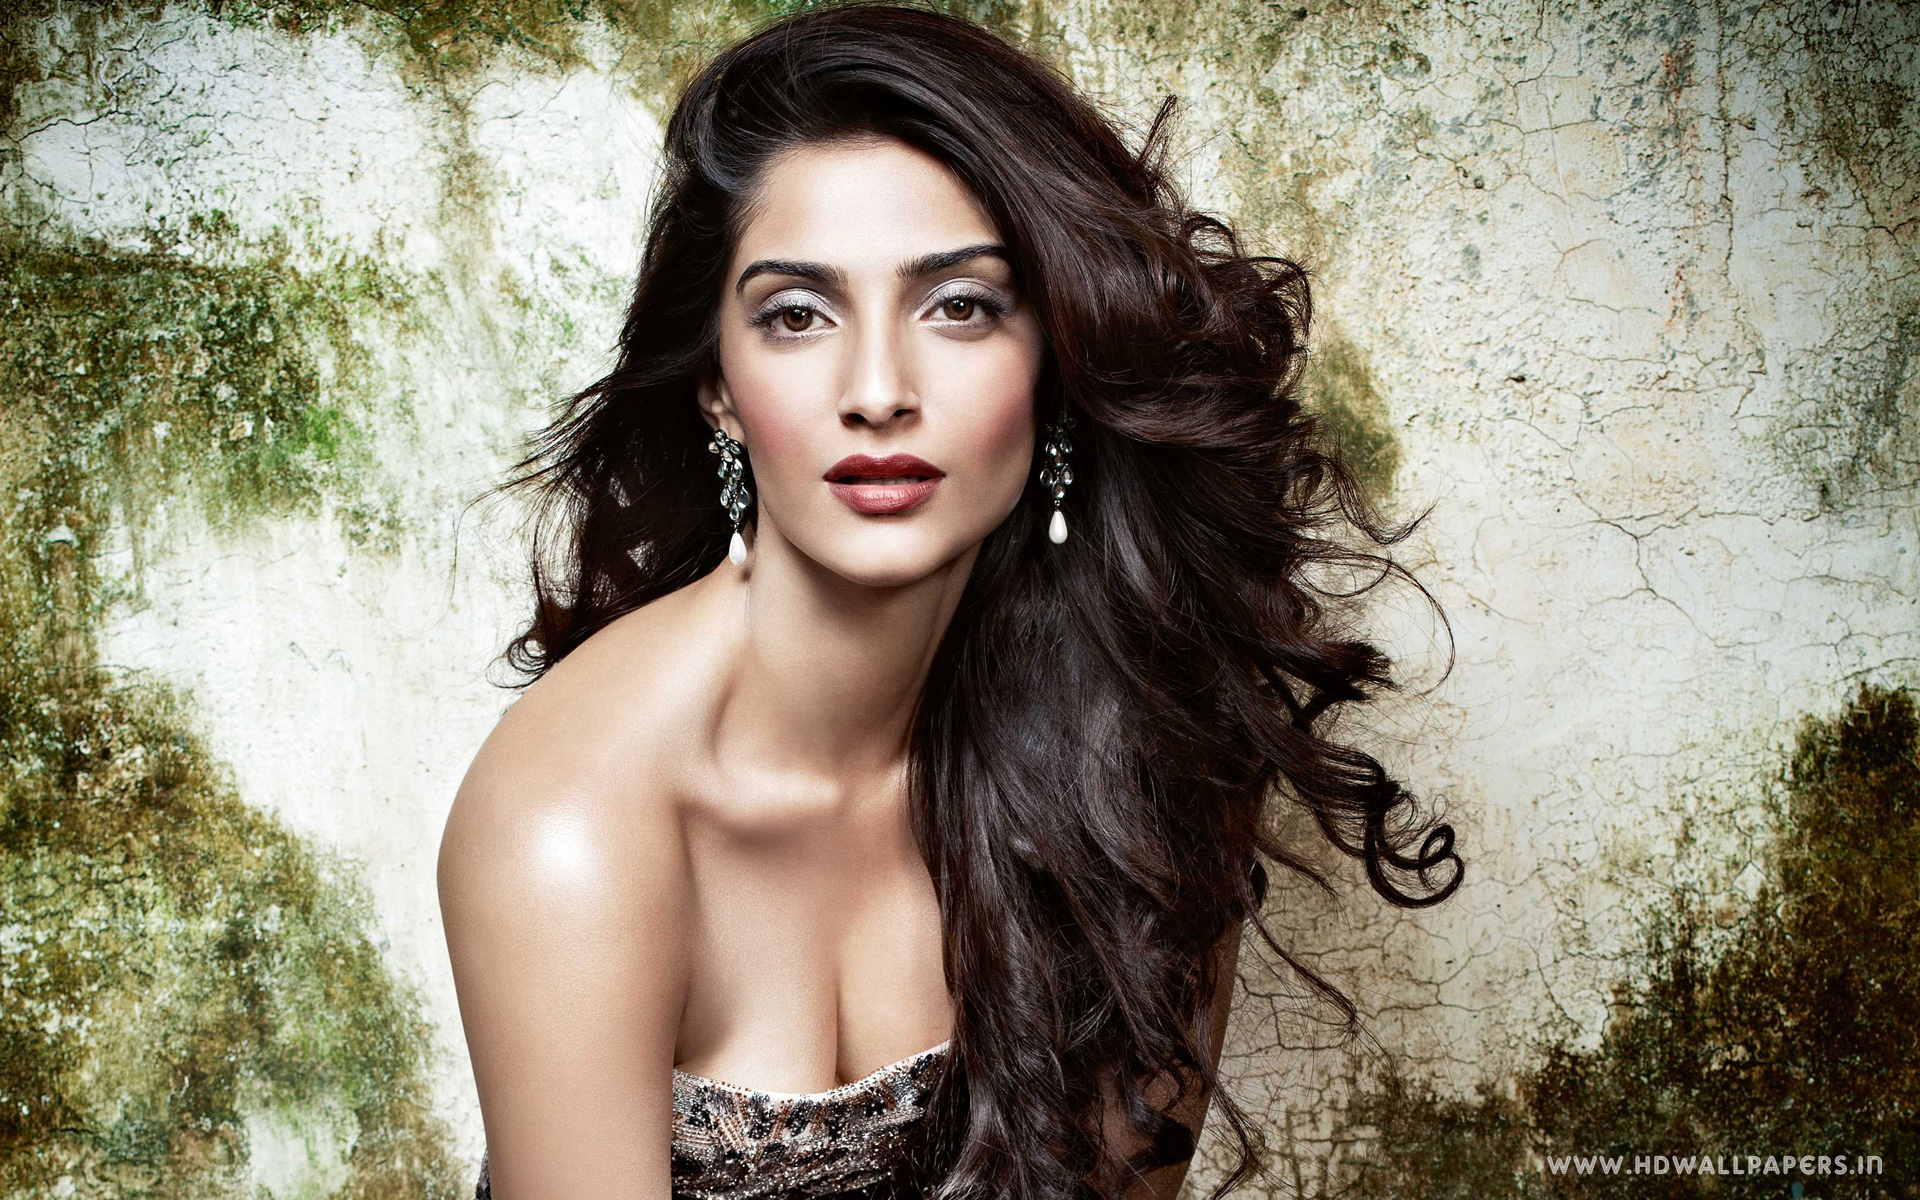 Bollywood Actress Sonam Kapoor 4142432 1920x1200 All For Desktop 1920x1200